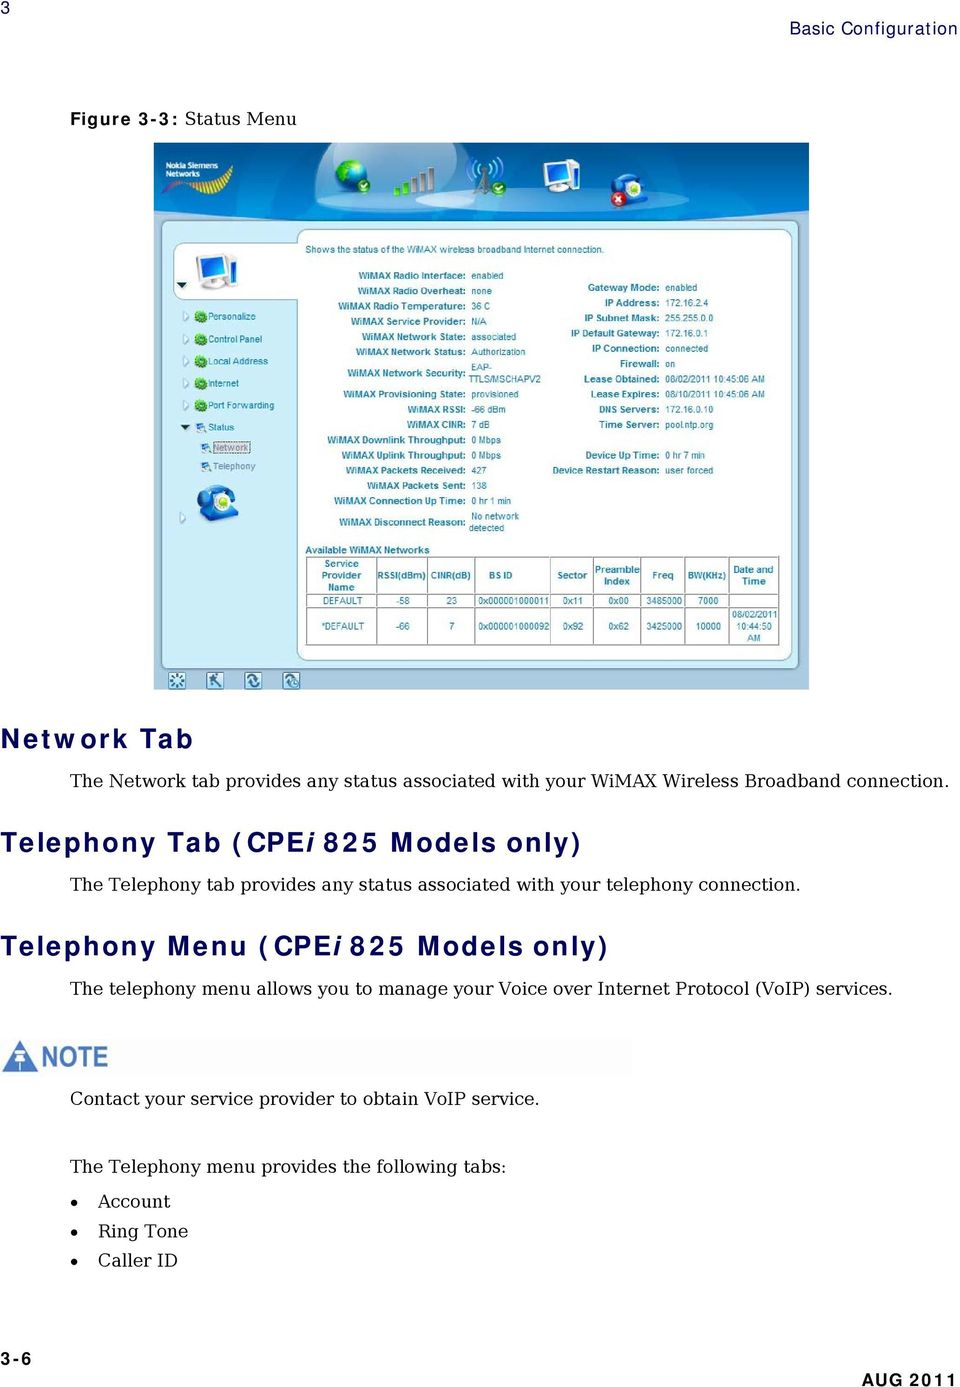 Telephony Tab (CPEi 825 Models only) The Telephony tab provides any status associated with your telephony connection.